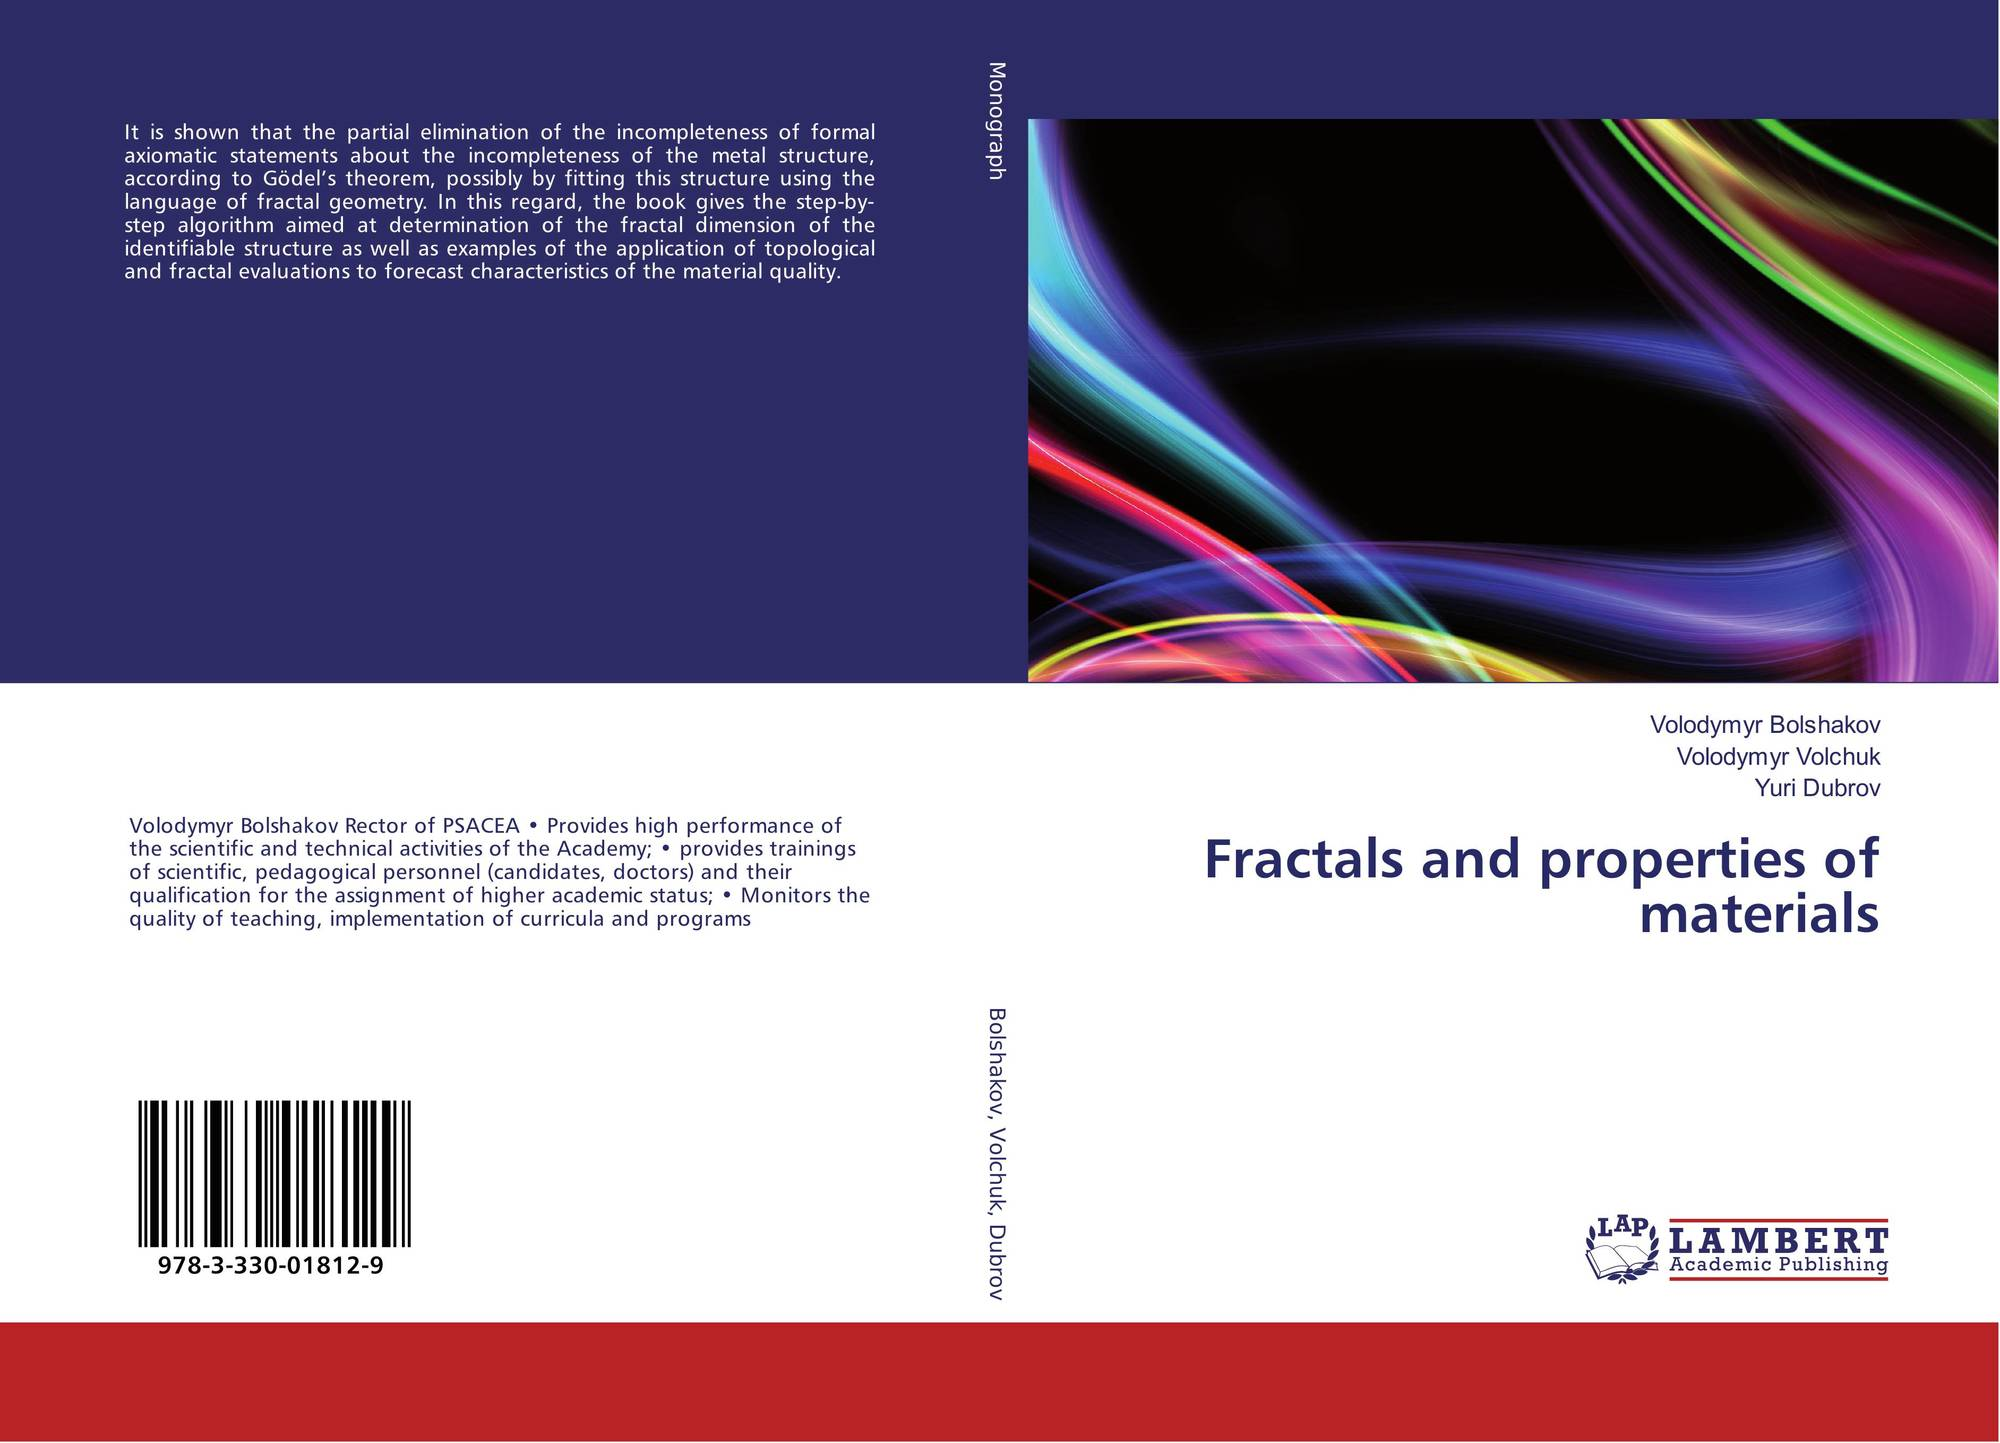 characteristics of fractals and fractal dimensions engineering essay Department of biomedical engineering, university of texas at austin, tx, usa this essay is presented with two principal objectives in mind: first, to document the prevalence of fractals at all levels of the nervous system, giving credence to the notion of their functional relevance and second, to draw attention to the as yet still.